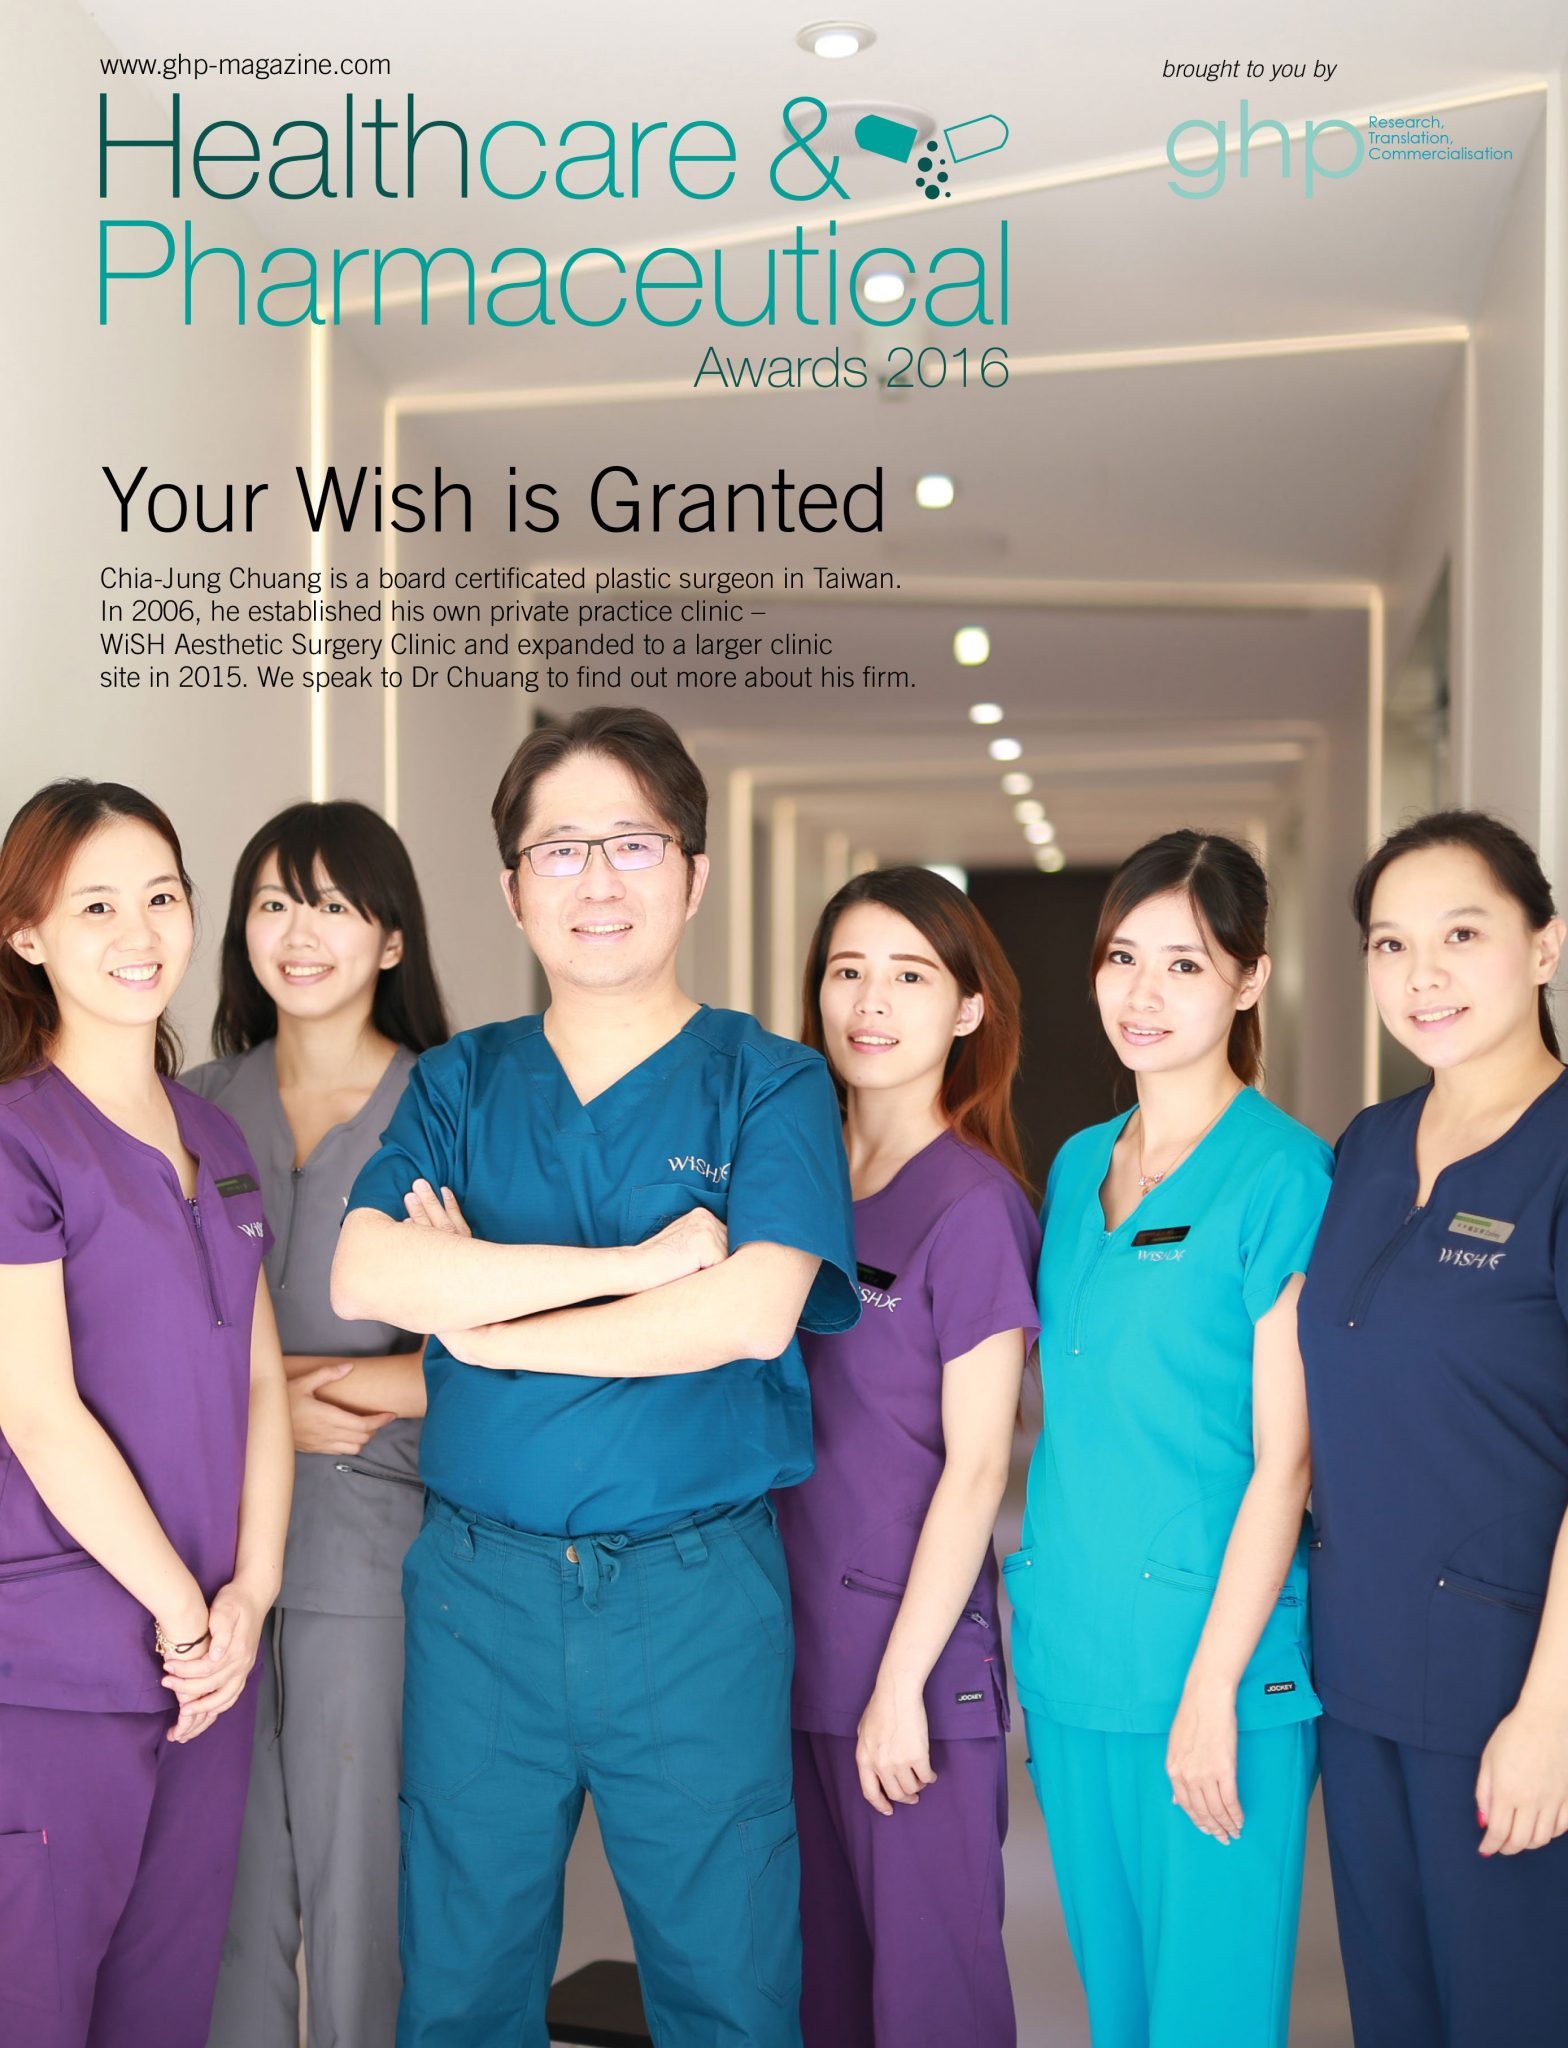 2016 Healthcare & Pharmaceutical